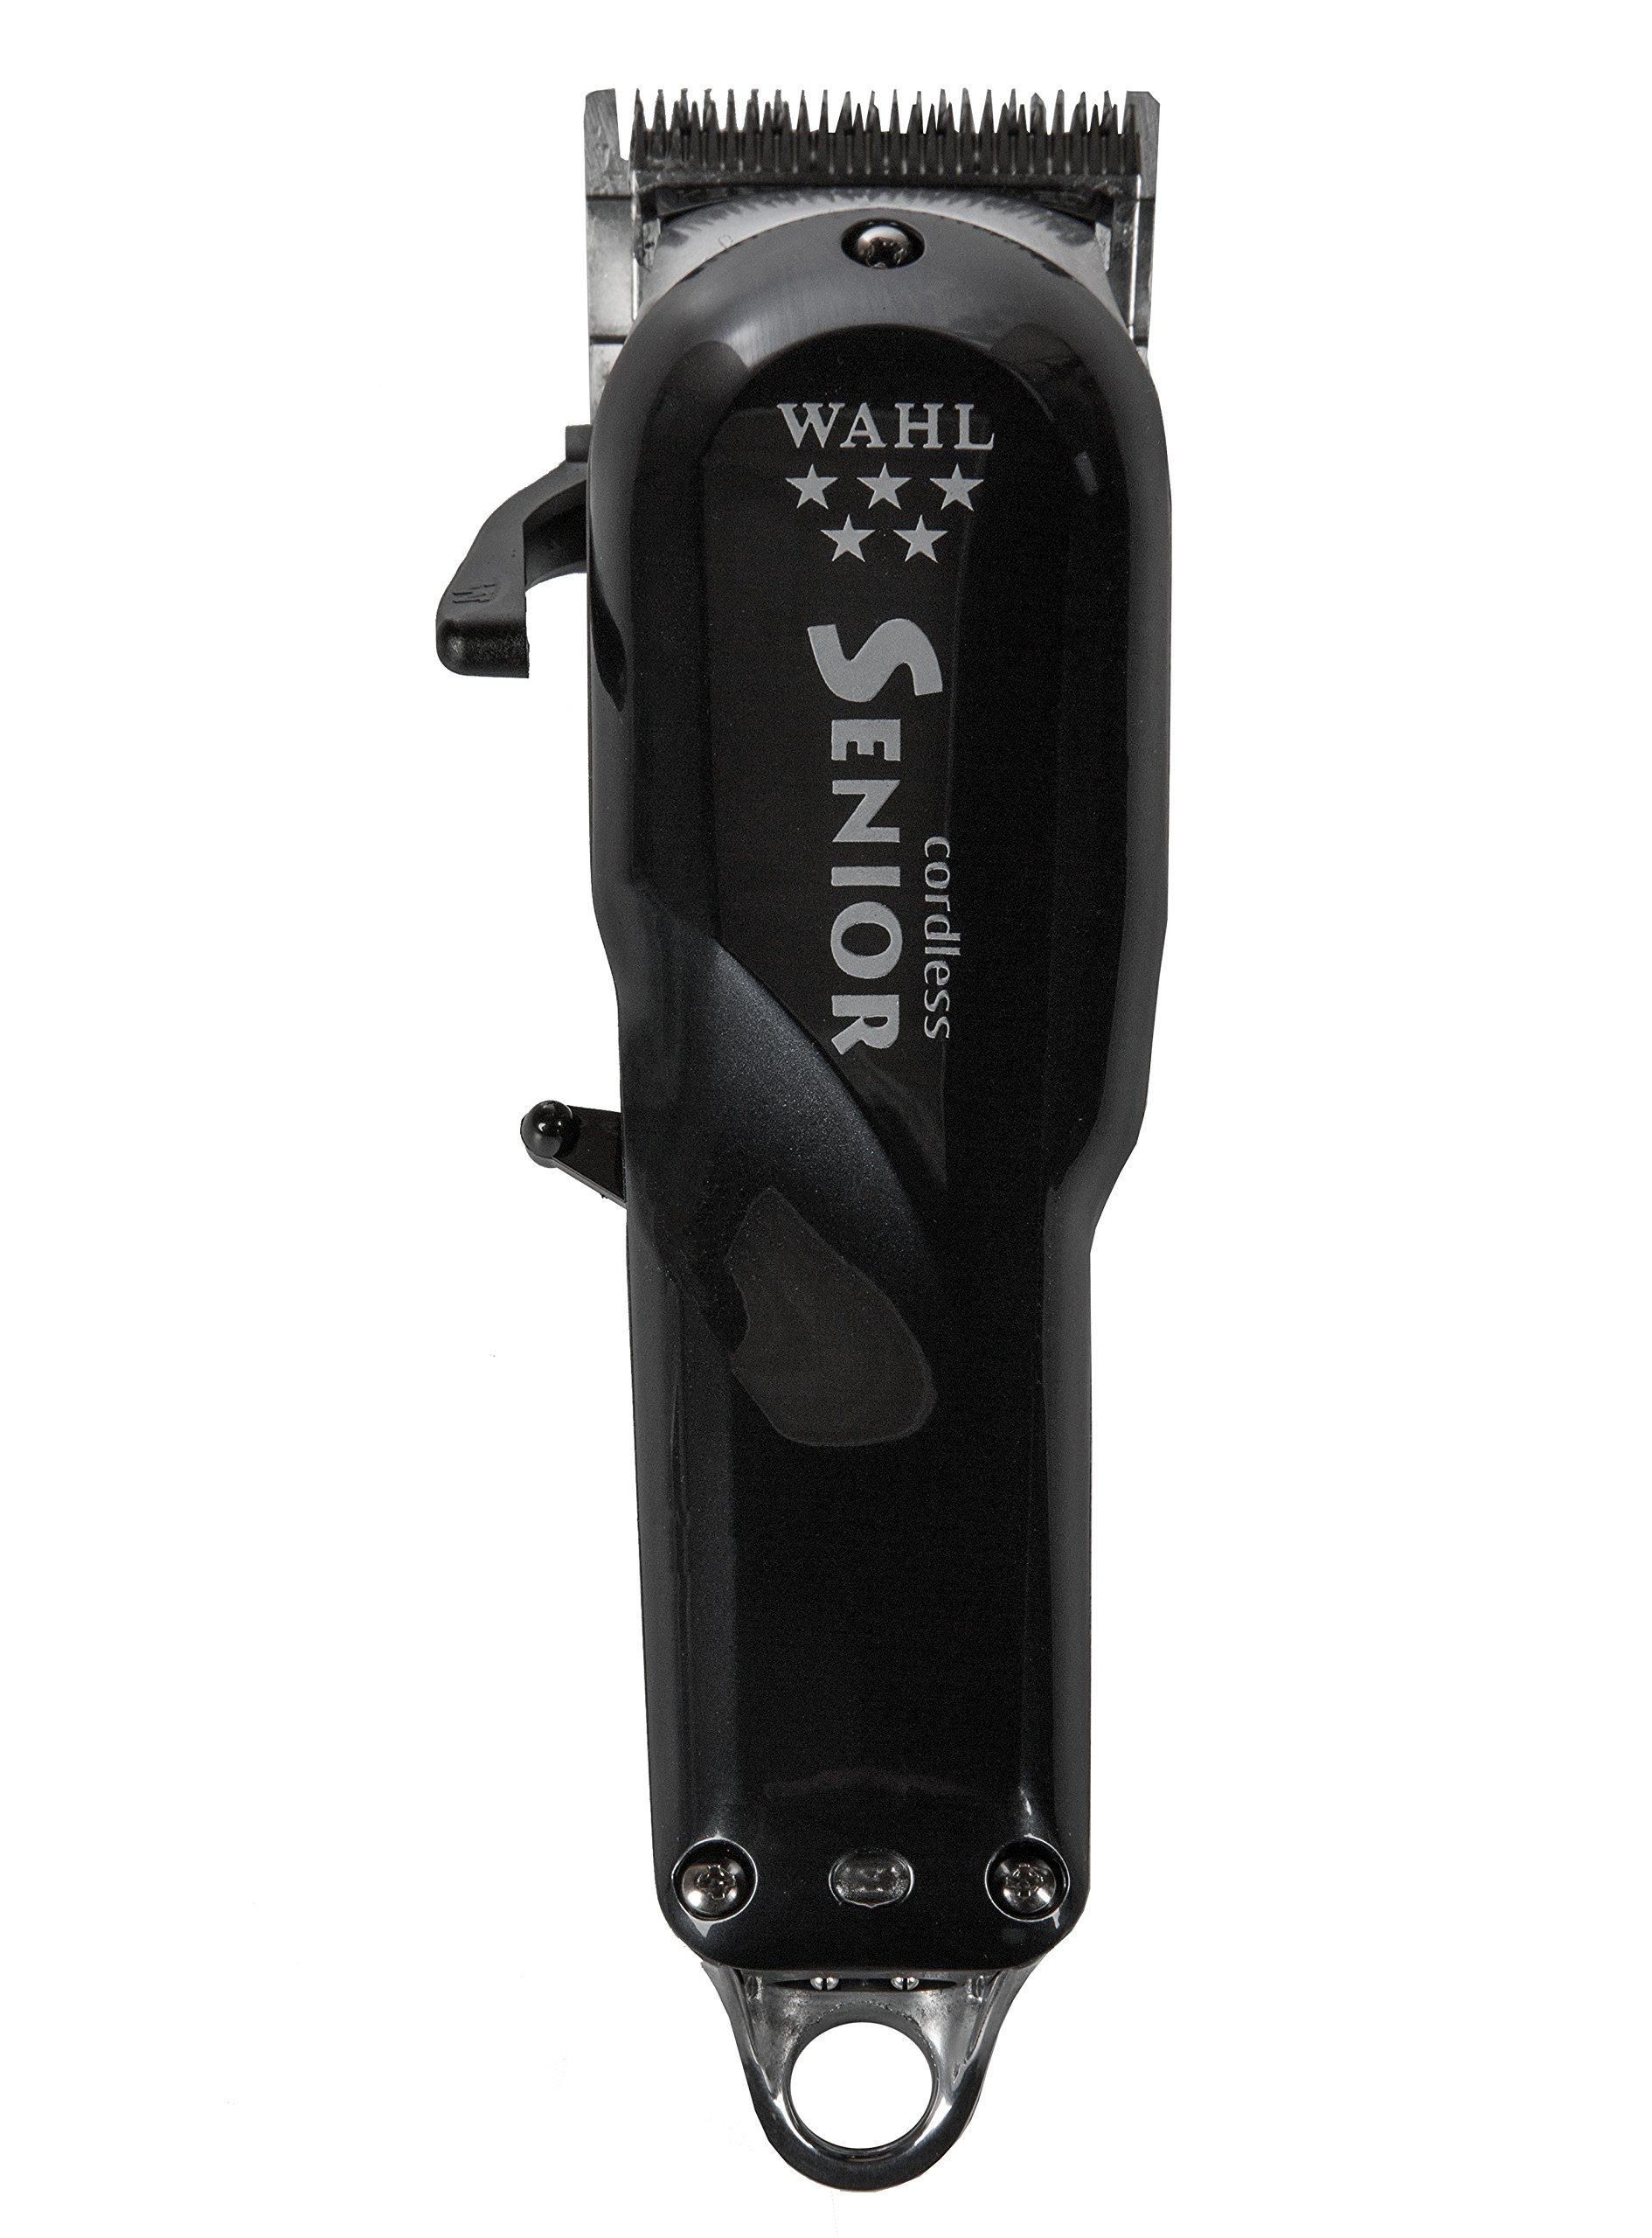 Wahl Professional 5-Star Series Cordless Senior Clipper #8504 – Great for Professional Stylists and Barbers – 70 Minute Run Time by Wahl Professional (Image #3)